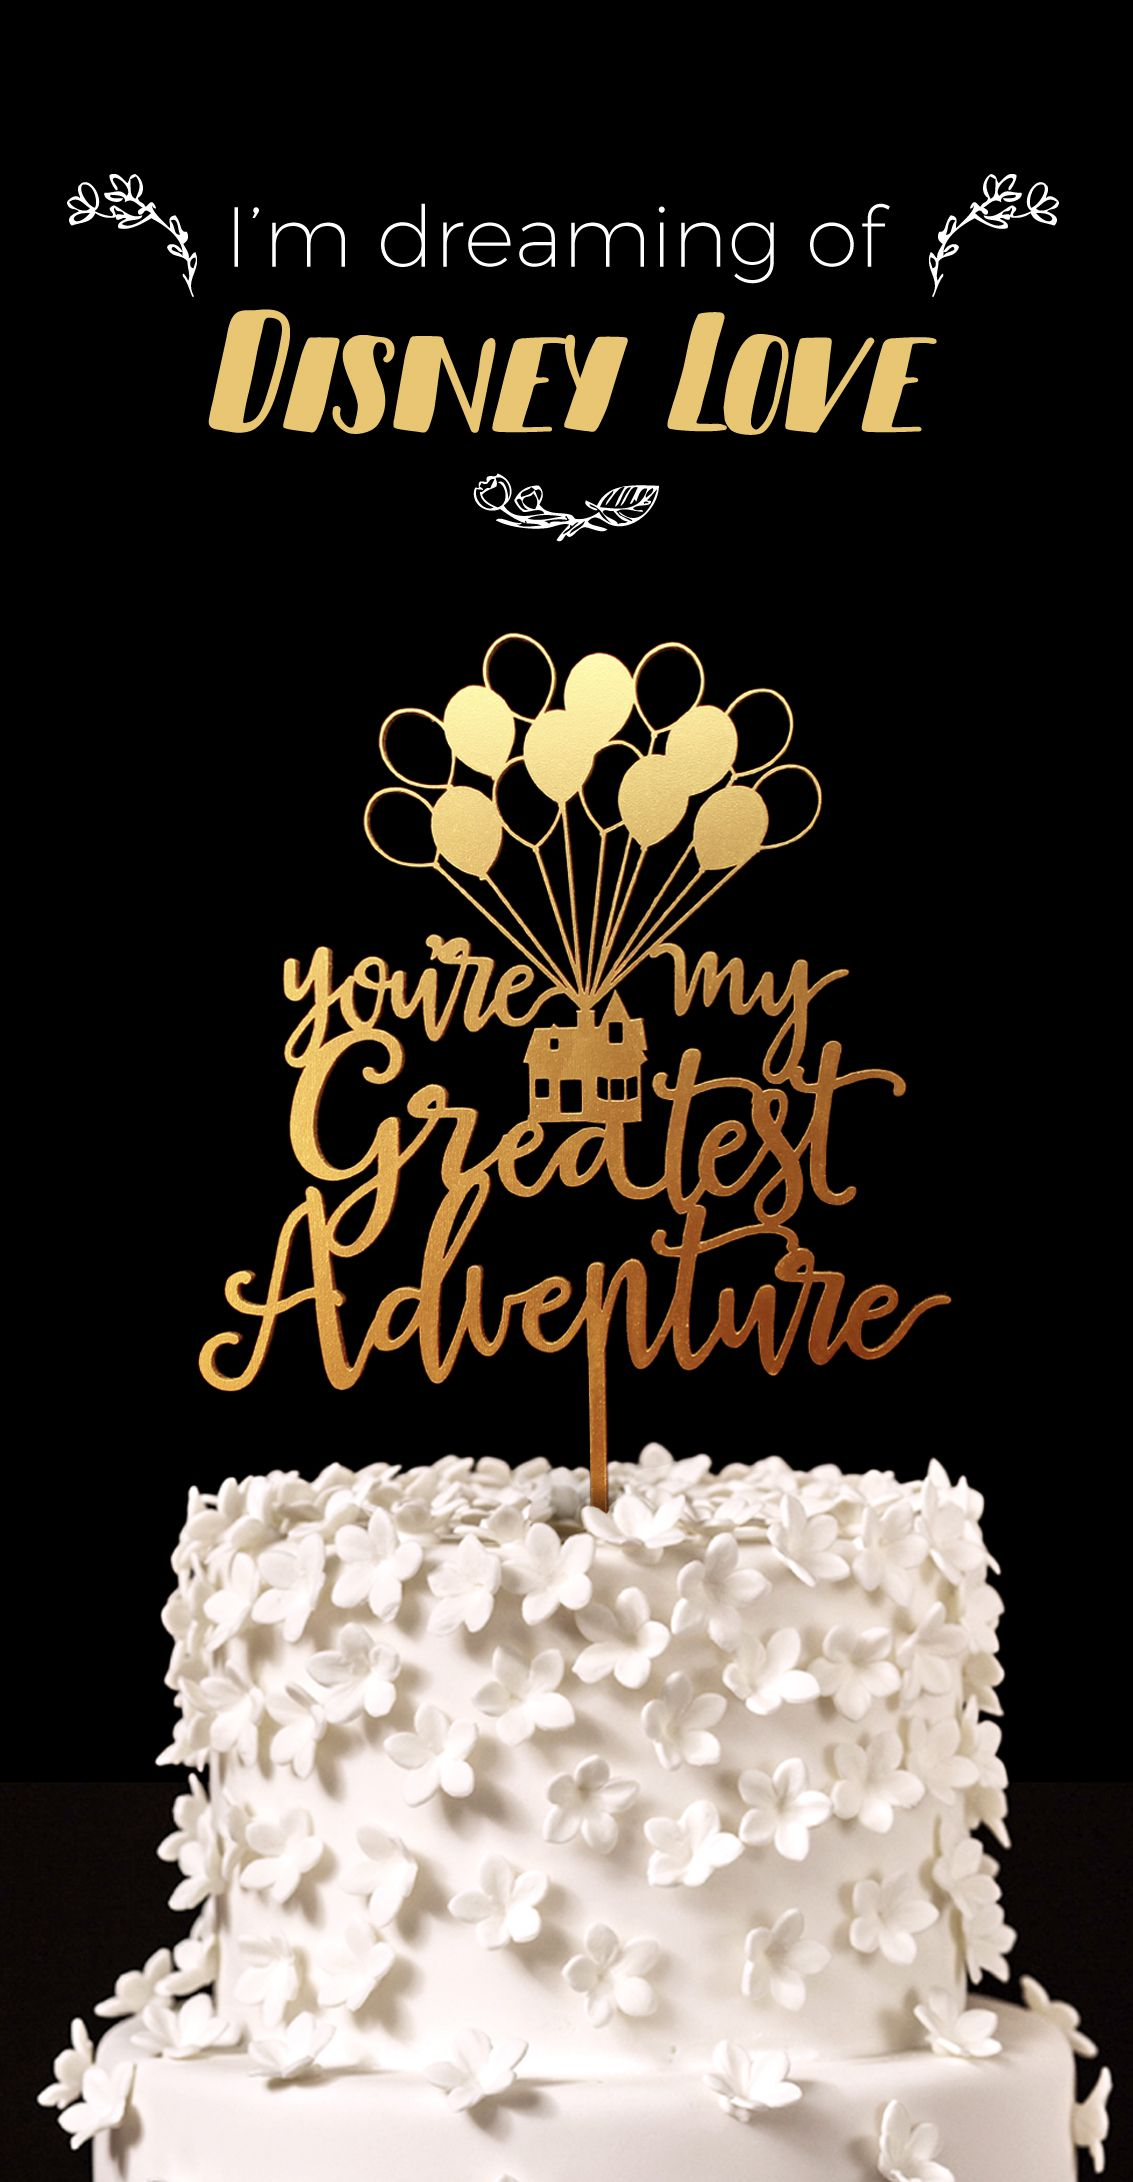 Up Wedding Cake Topper You re my Greatest Adventure Great for